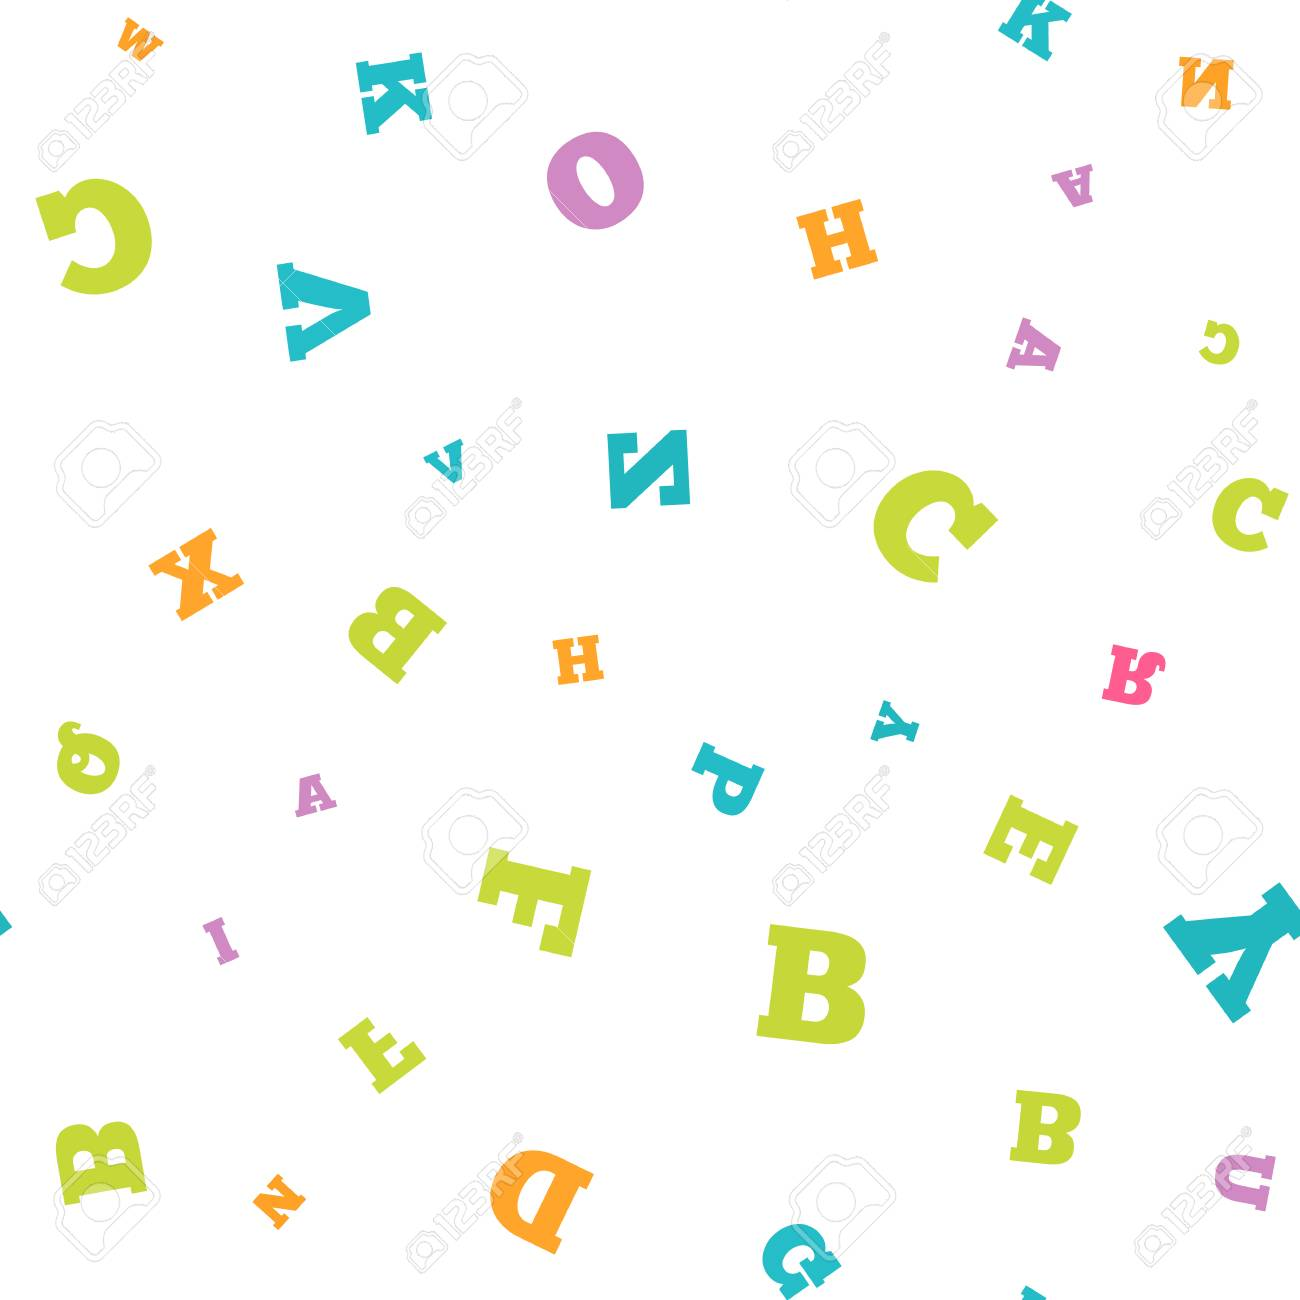 Colorful letter seamless pattern on white background - 82650687